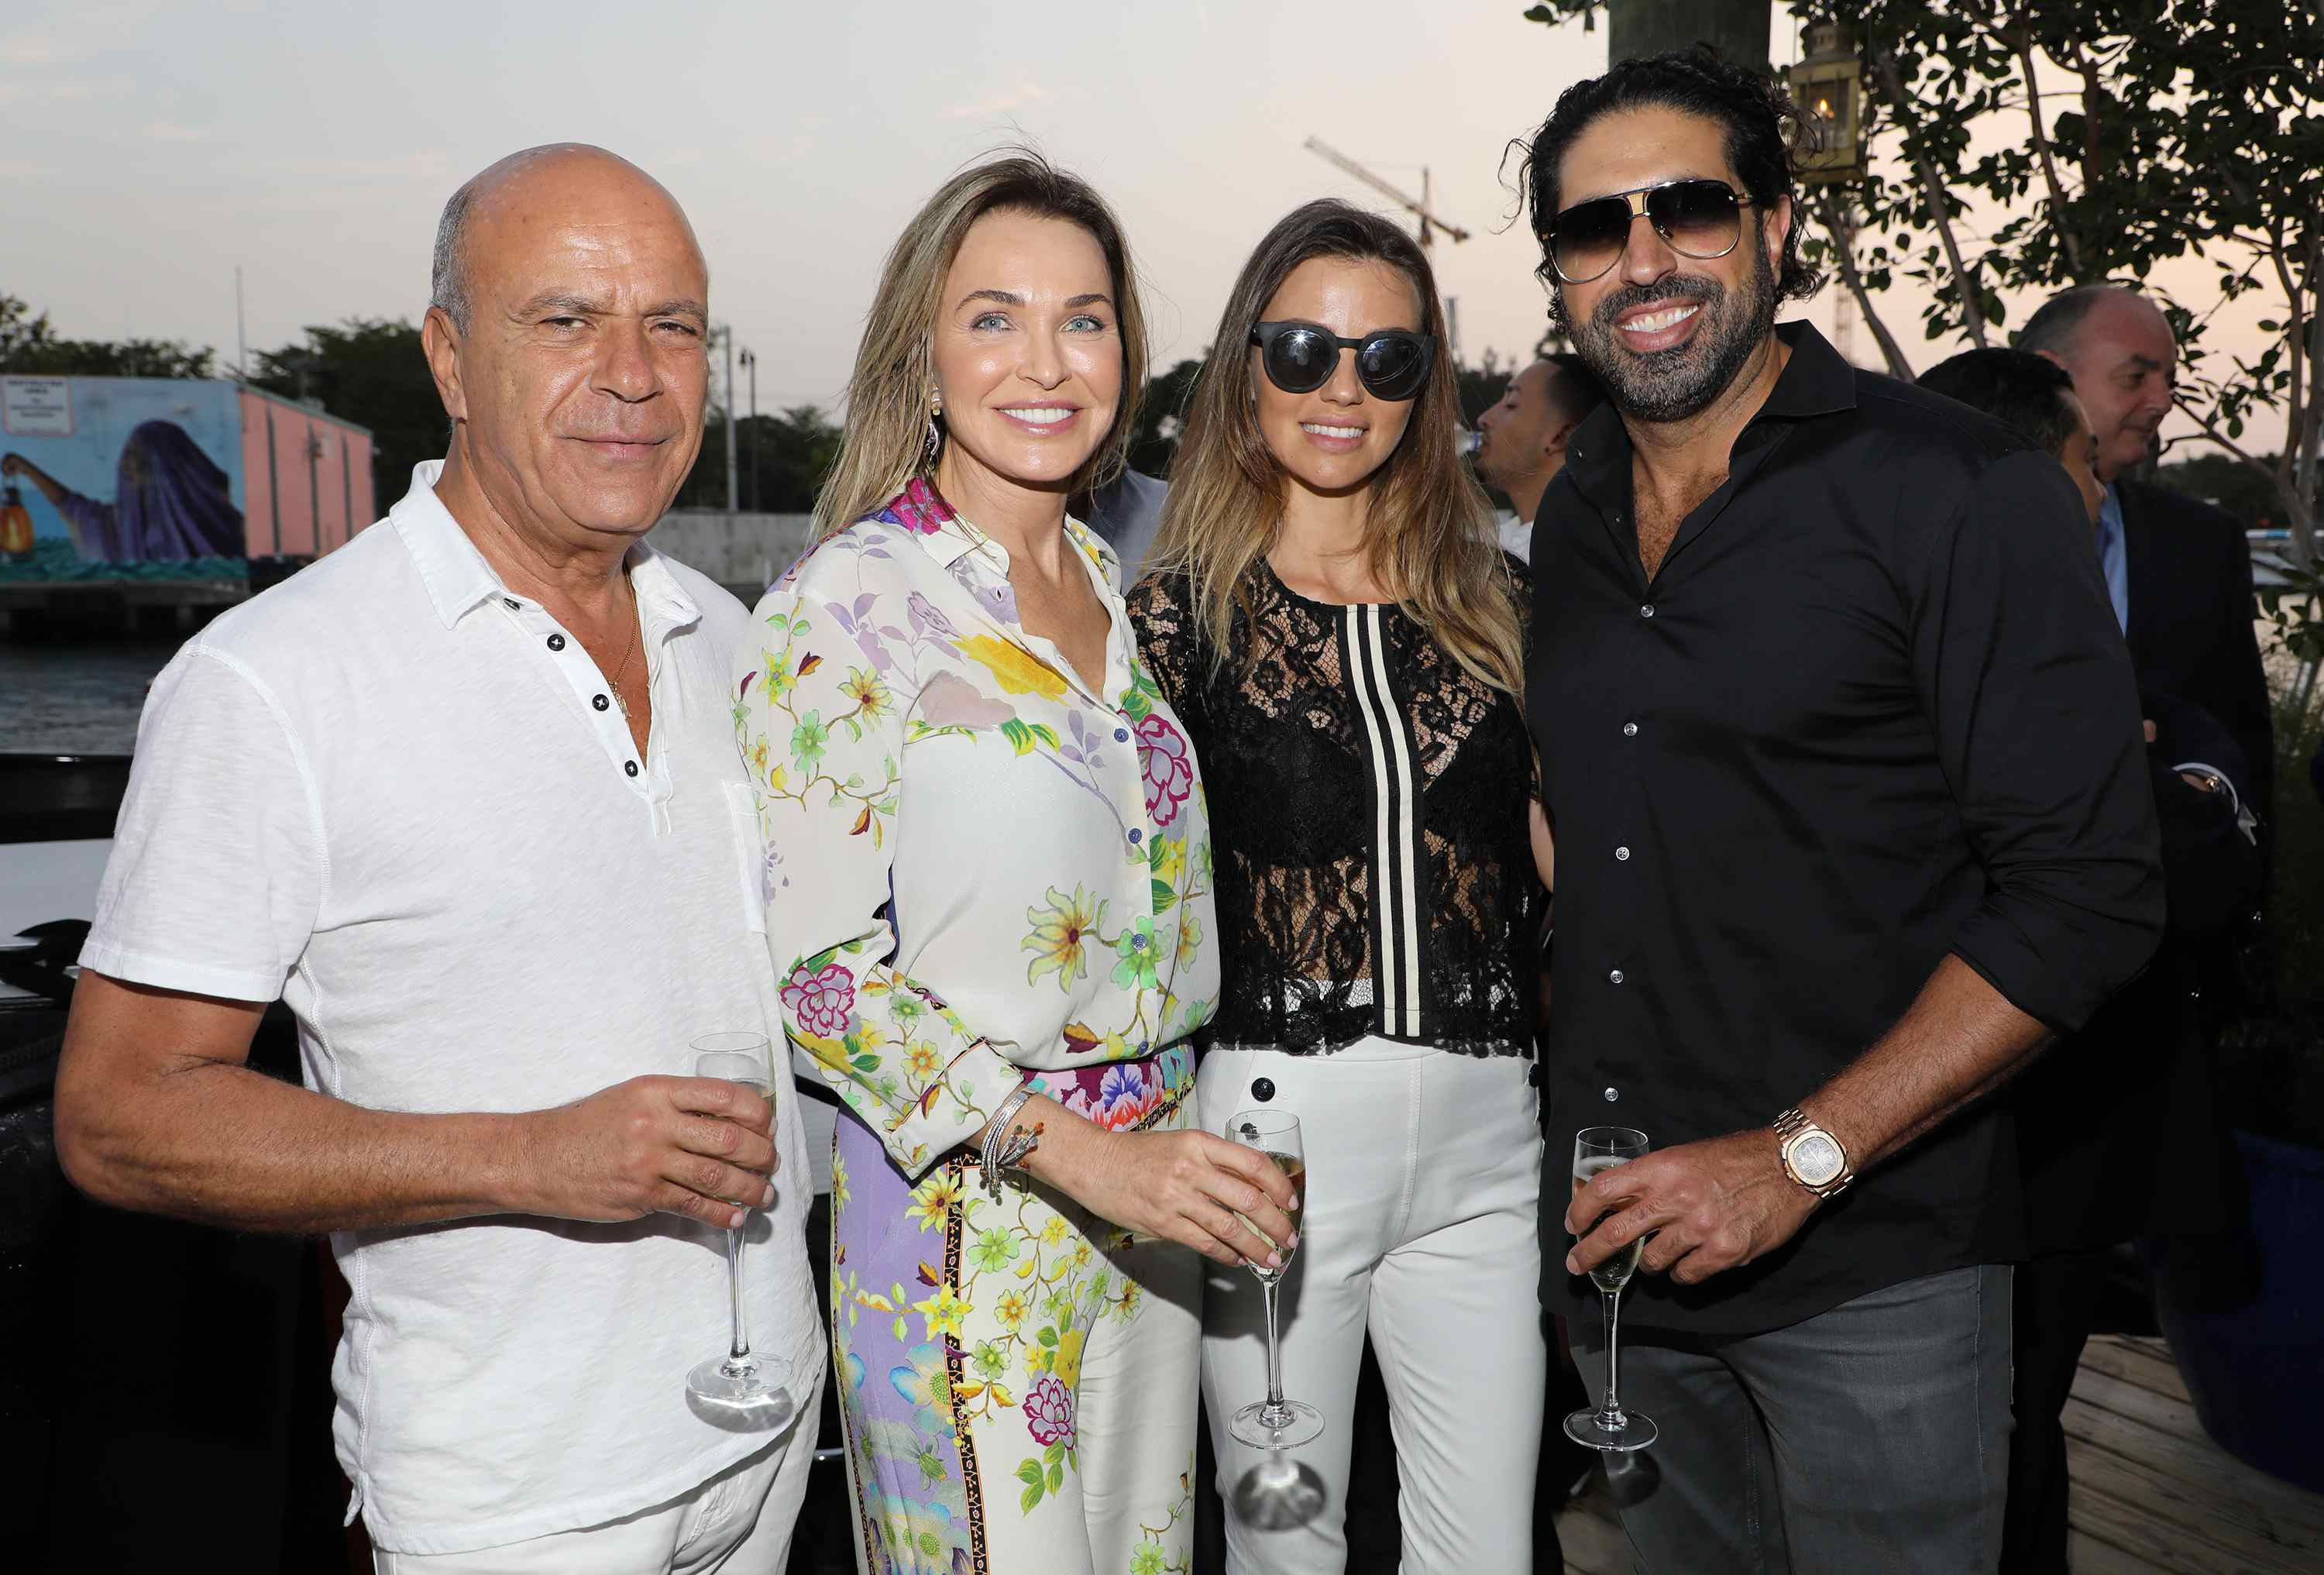 MIAMI, FL - APRIL 6: Benny Shahtai, Stacey Shabtai, Marianne Dieterich and Tommy Kato are seen at the Haute Living and Ulysse Nardin Collectors Dinner at Seaspice on April 6, 2017 in Miami, Florida. (Photo by Alexander Tamargo/Getty Images